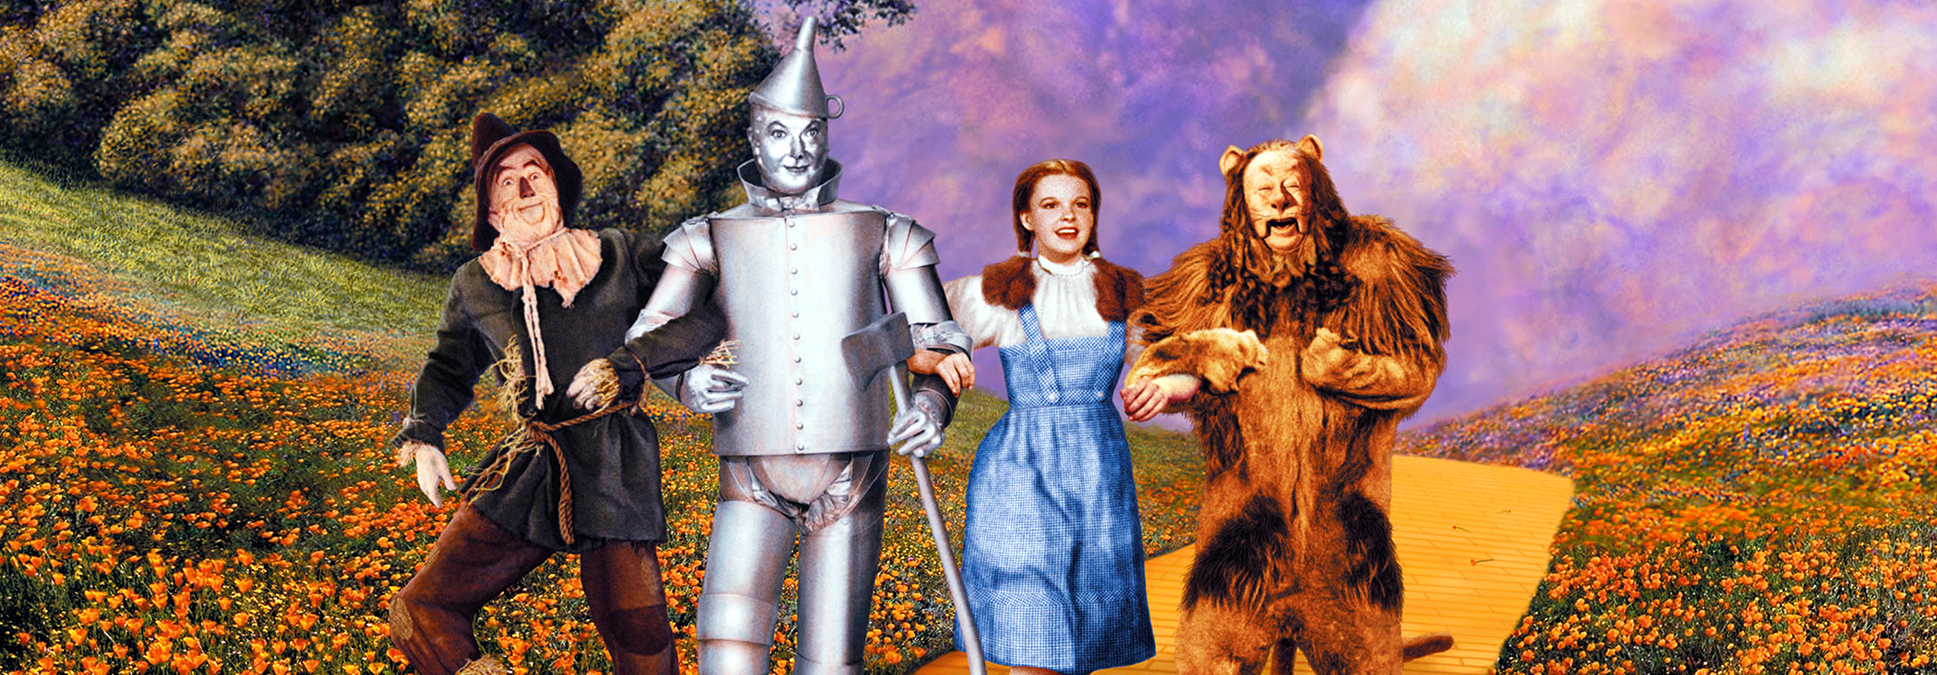 Wizard of Oz Peck Flicks at the Marcus Center